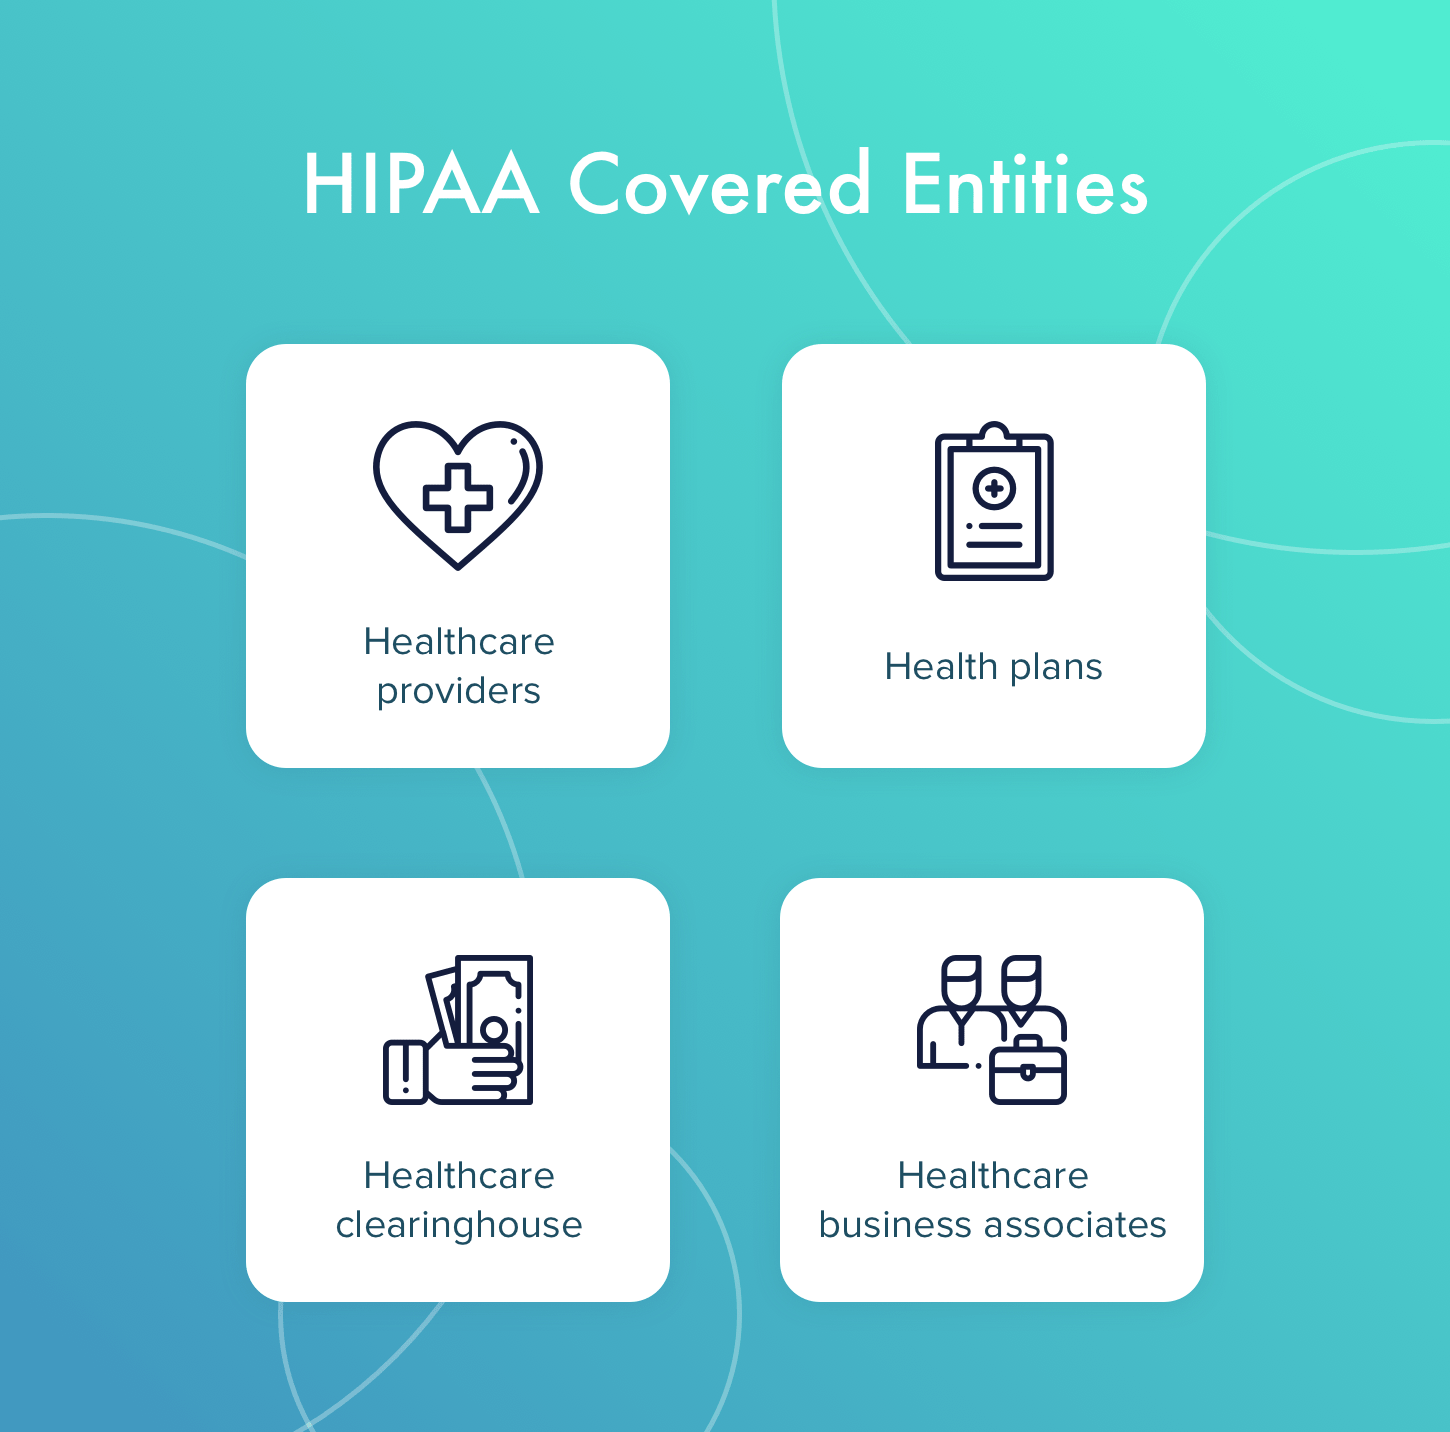 HIPAA Obliged Entities